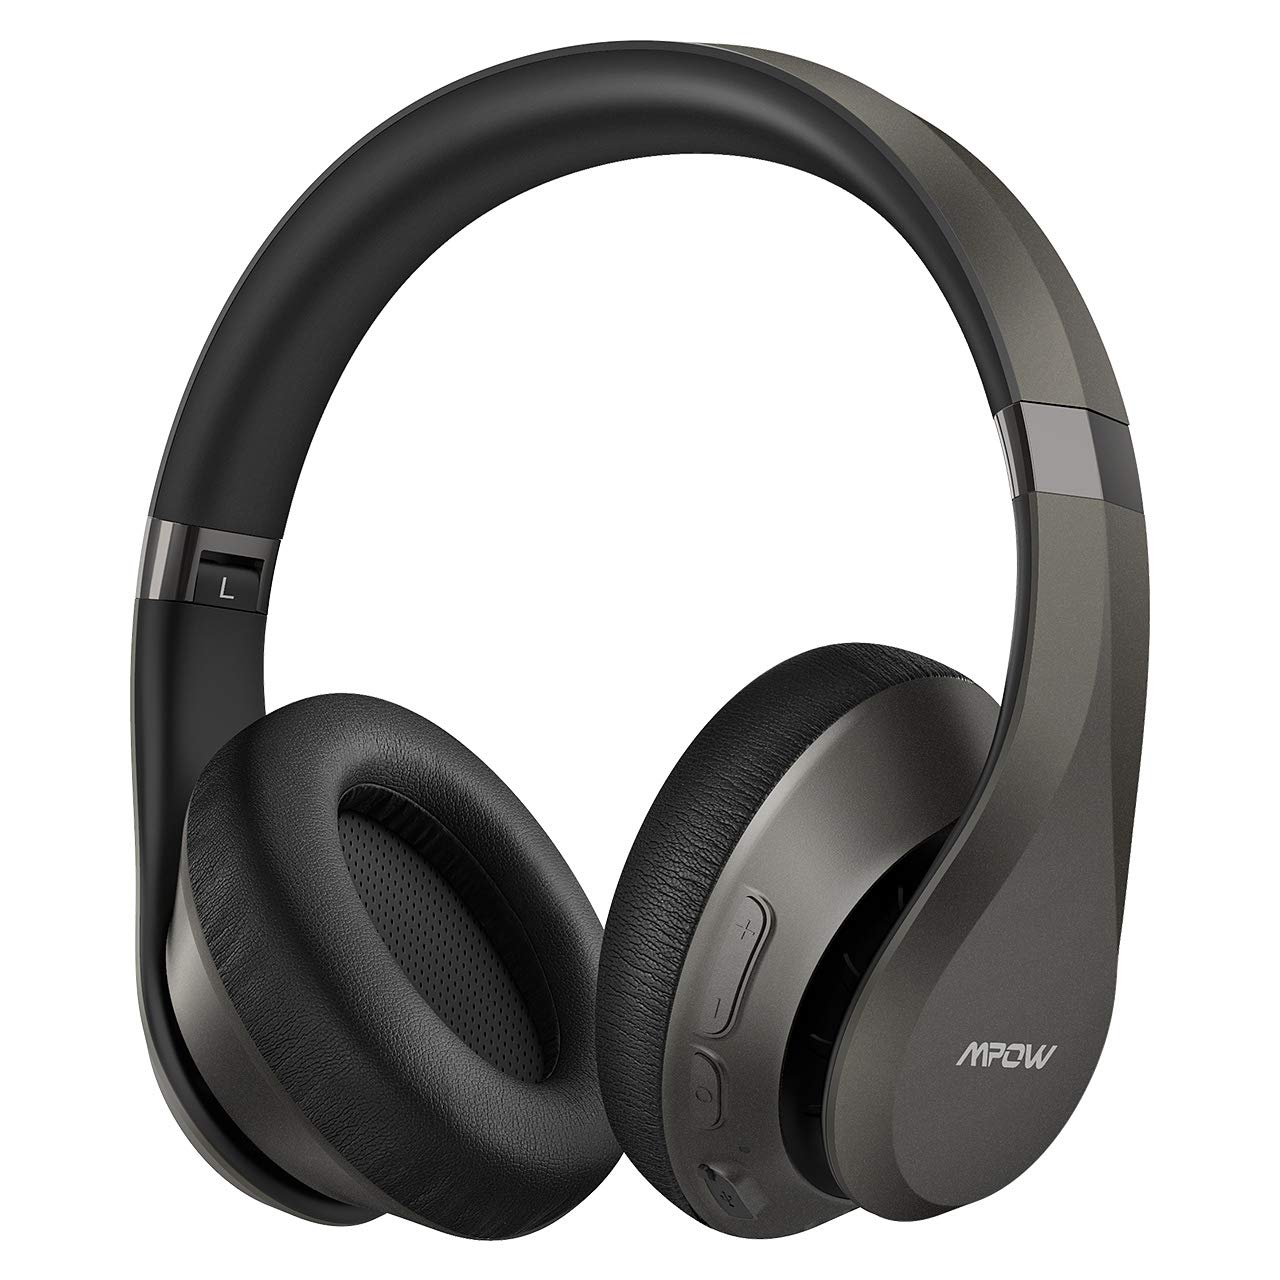 Mpow H20 Bluetooth Headphones Over Ear, 30 Hrs Playtime Wireless Hi-Fi Deep Bass Headphones, Latest CVC 8.0 Headphones with Mic, Comfortable Earmuff Headset with Carrying Pouch for Travel PC Cellphone